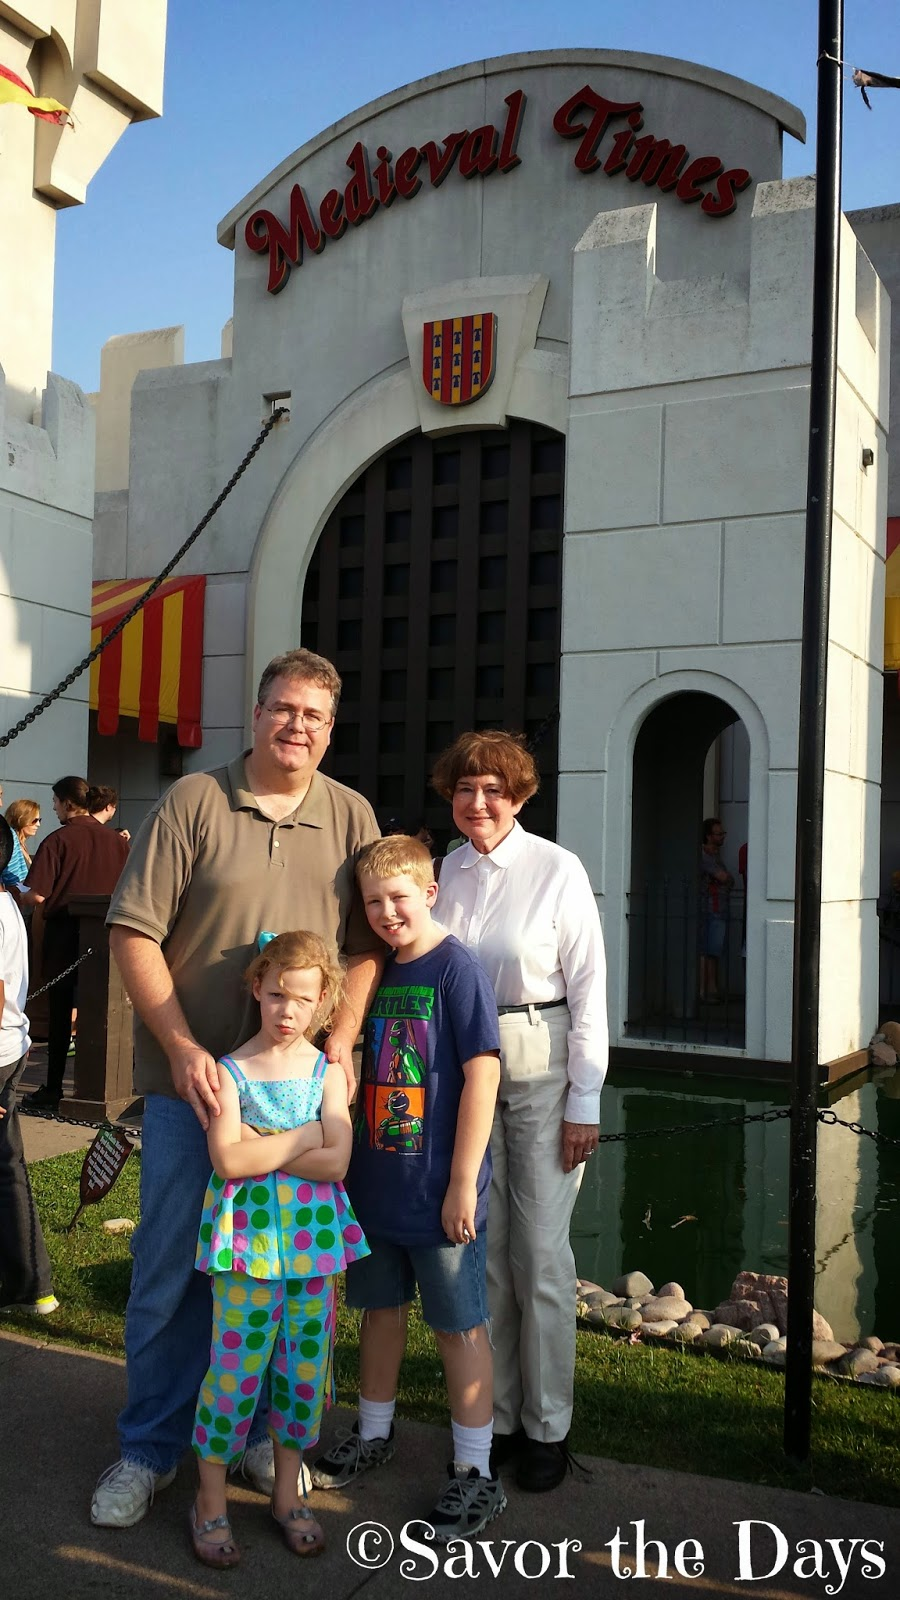 Family at Medieval Times in Dallas